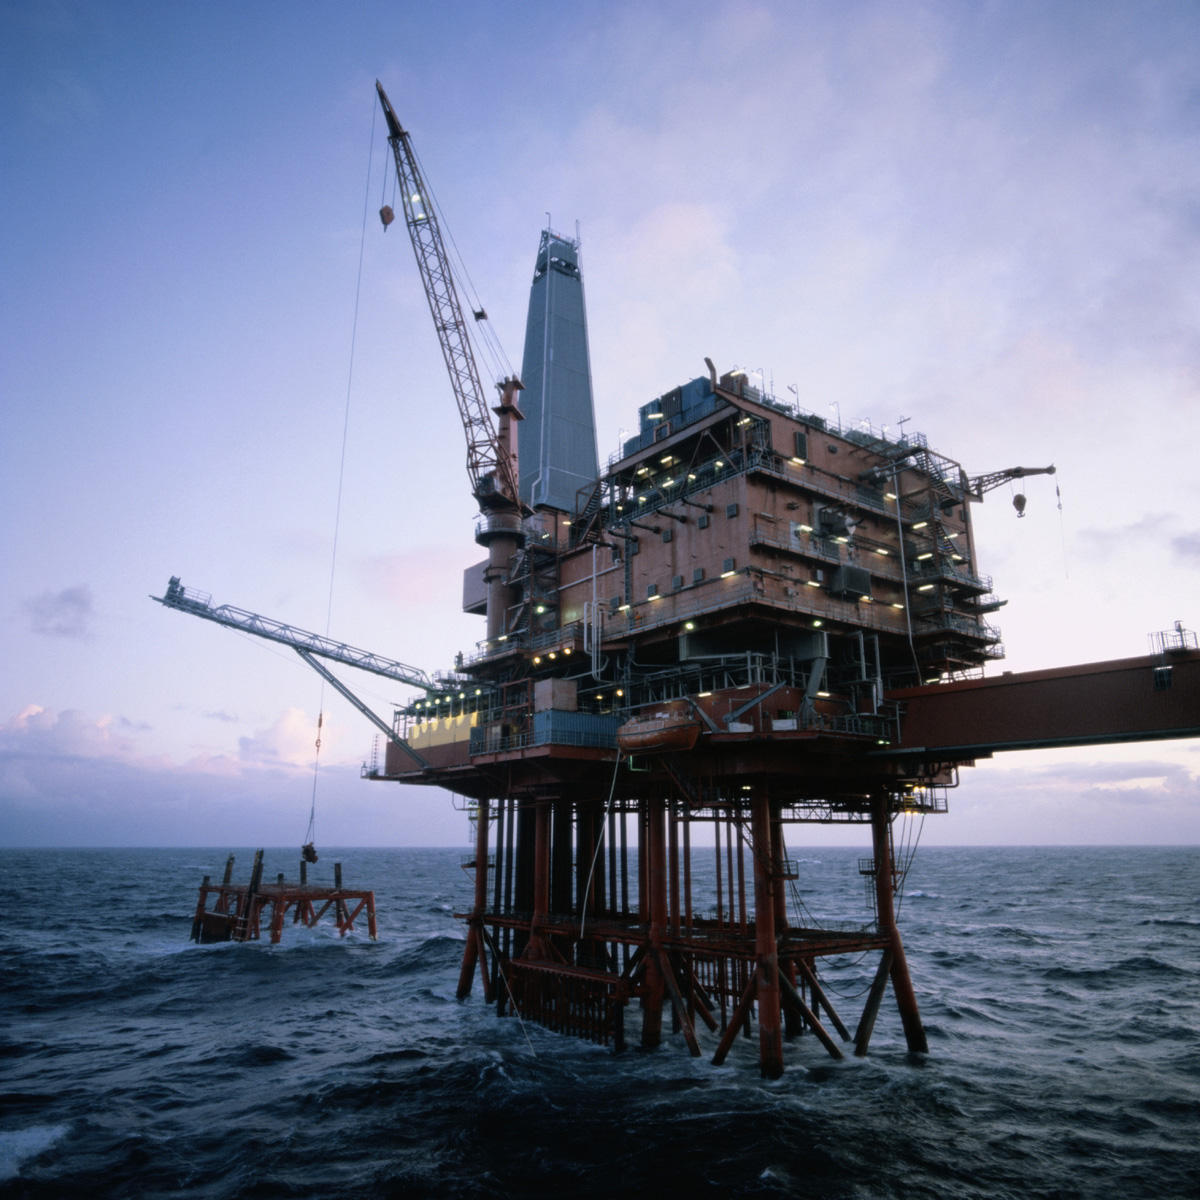 Lessons from Statoil's leadership development revolution